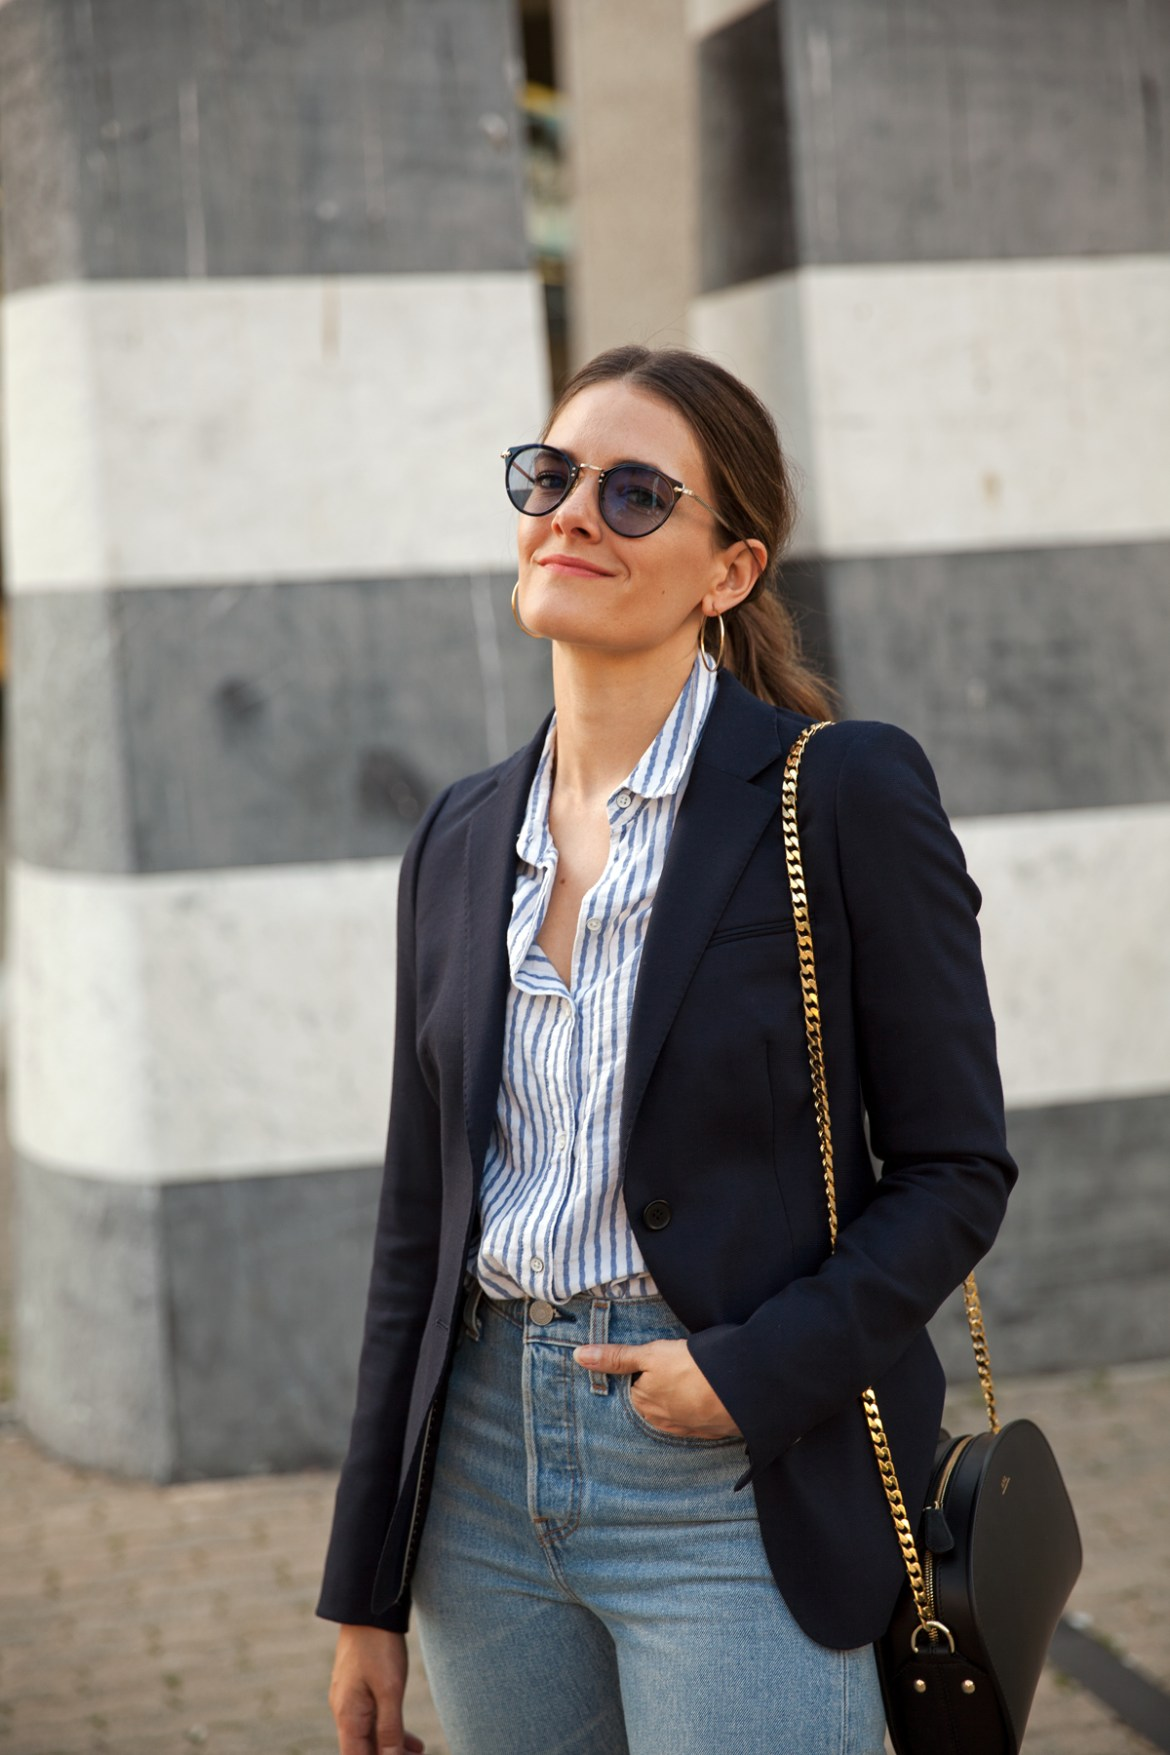 Transitions Colours Lenses in Sapphire worn with navy blazer, Levi's jeans by Inspiring Wit blogger Jenelle street style